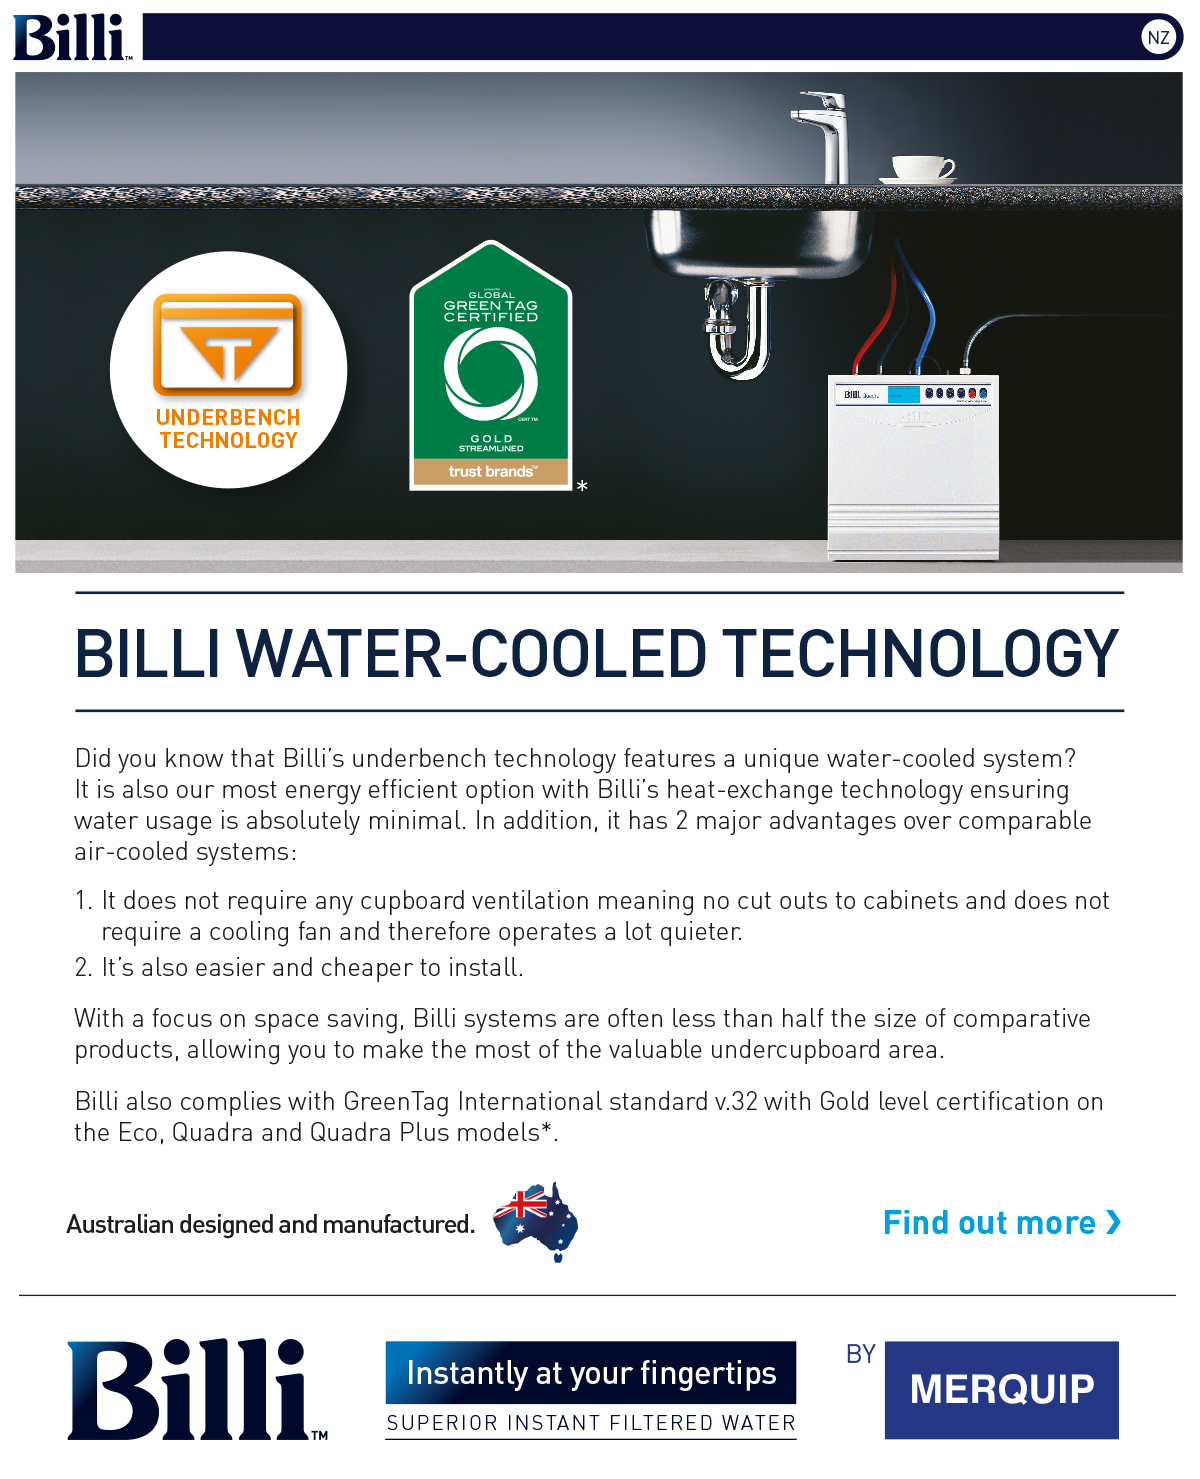 5681 Billi NZ Water-Cooled-Tech EDM FA